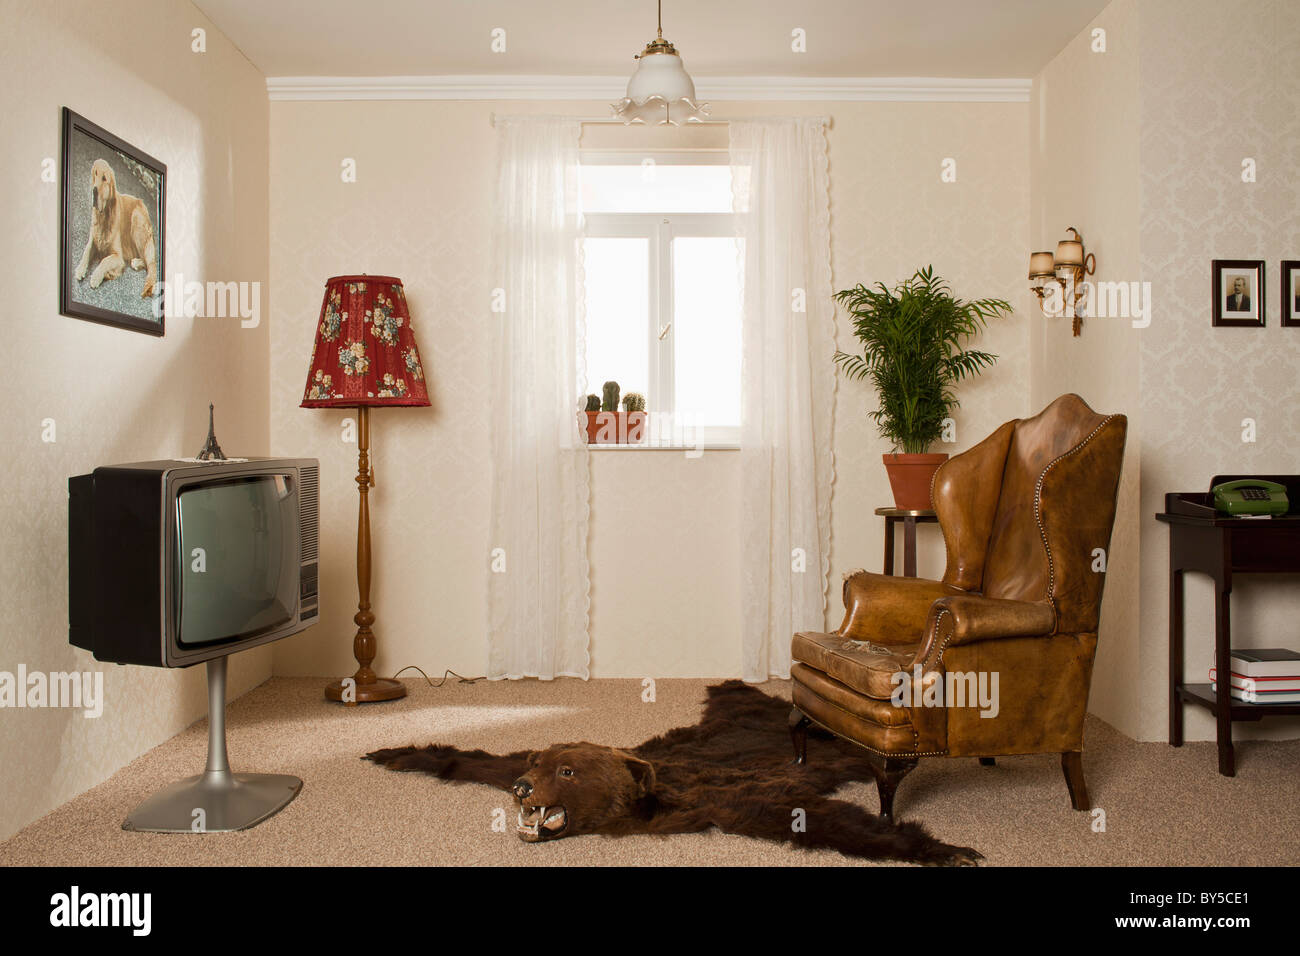 kitschy living room images 2018 a kitsch stock photo 33925641 alamy